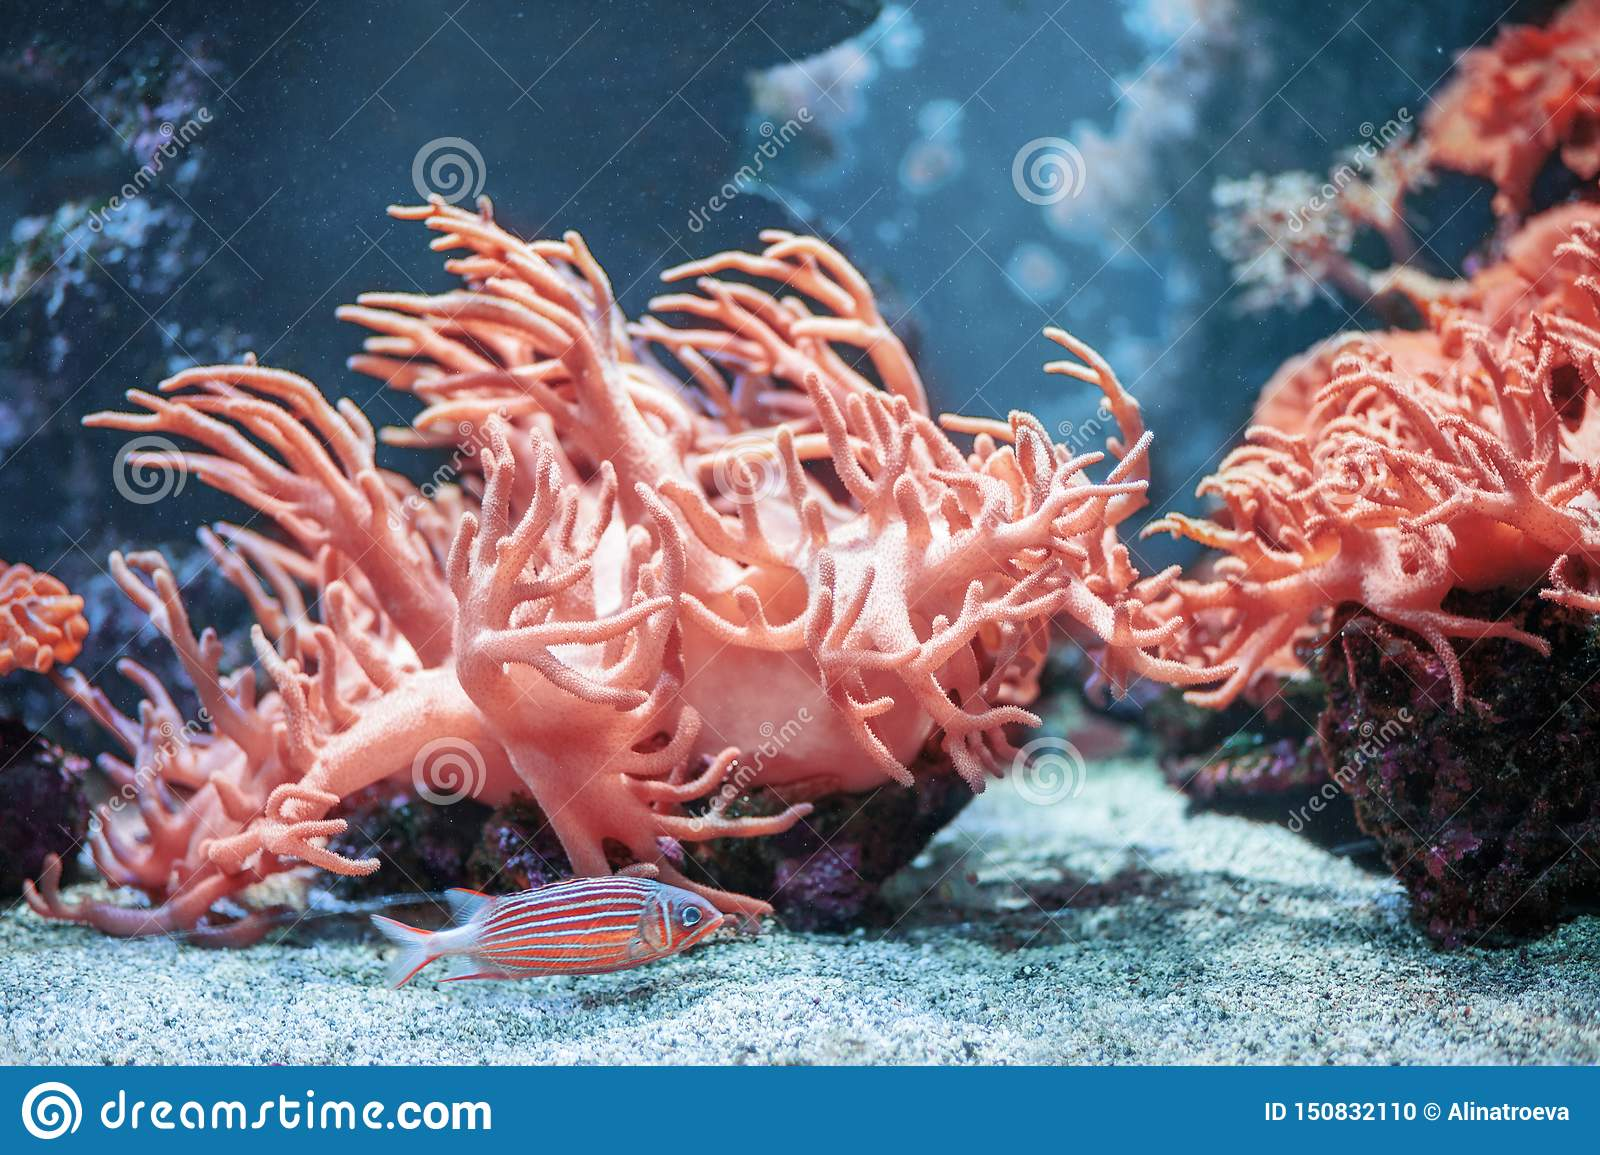 Underwater backround with Living Coral colour. Fish with corals